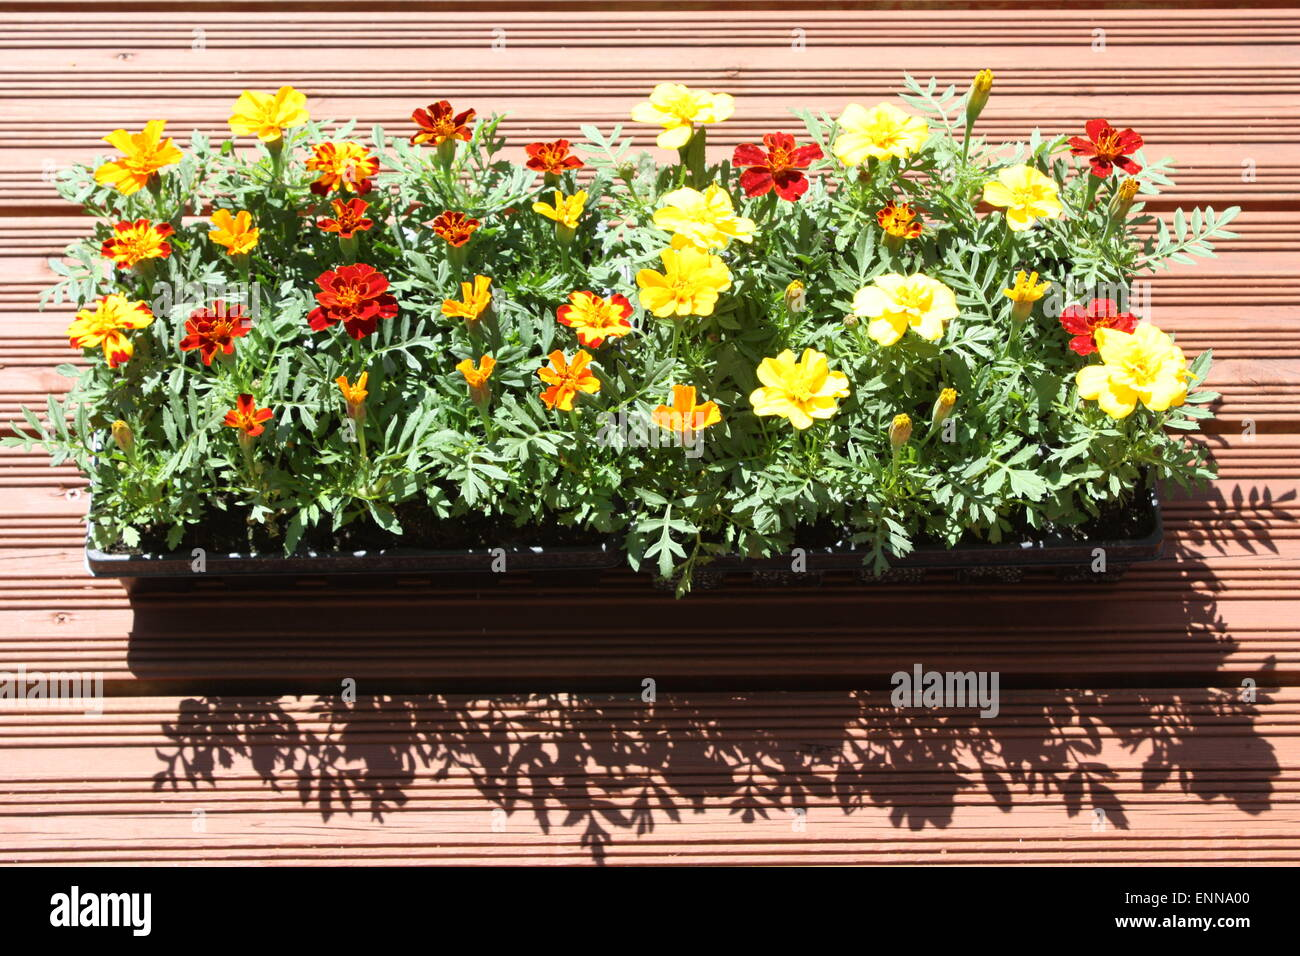 Marigold flowering plants in black container Stock Photo